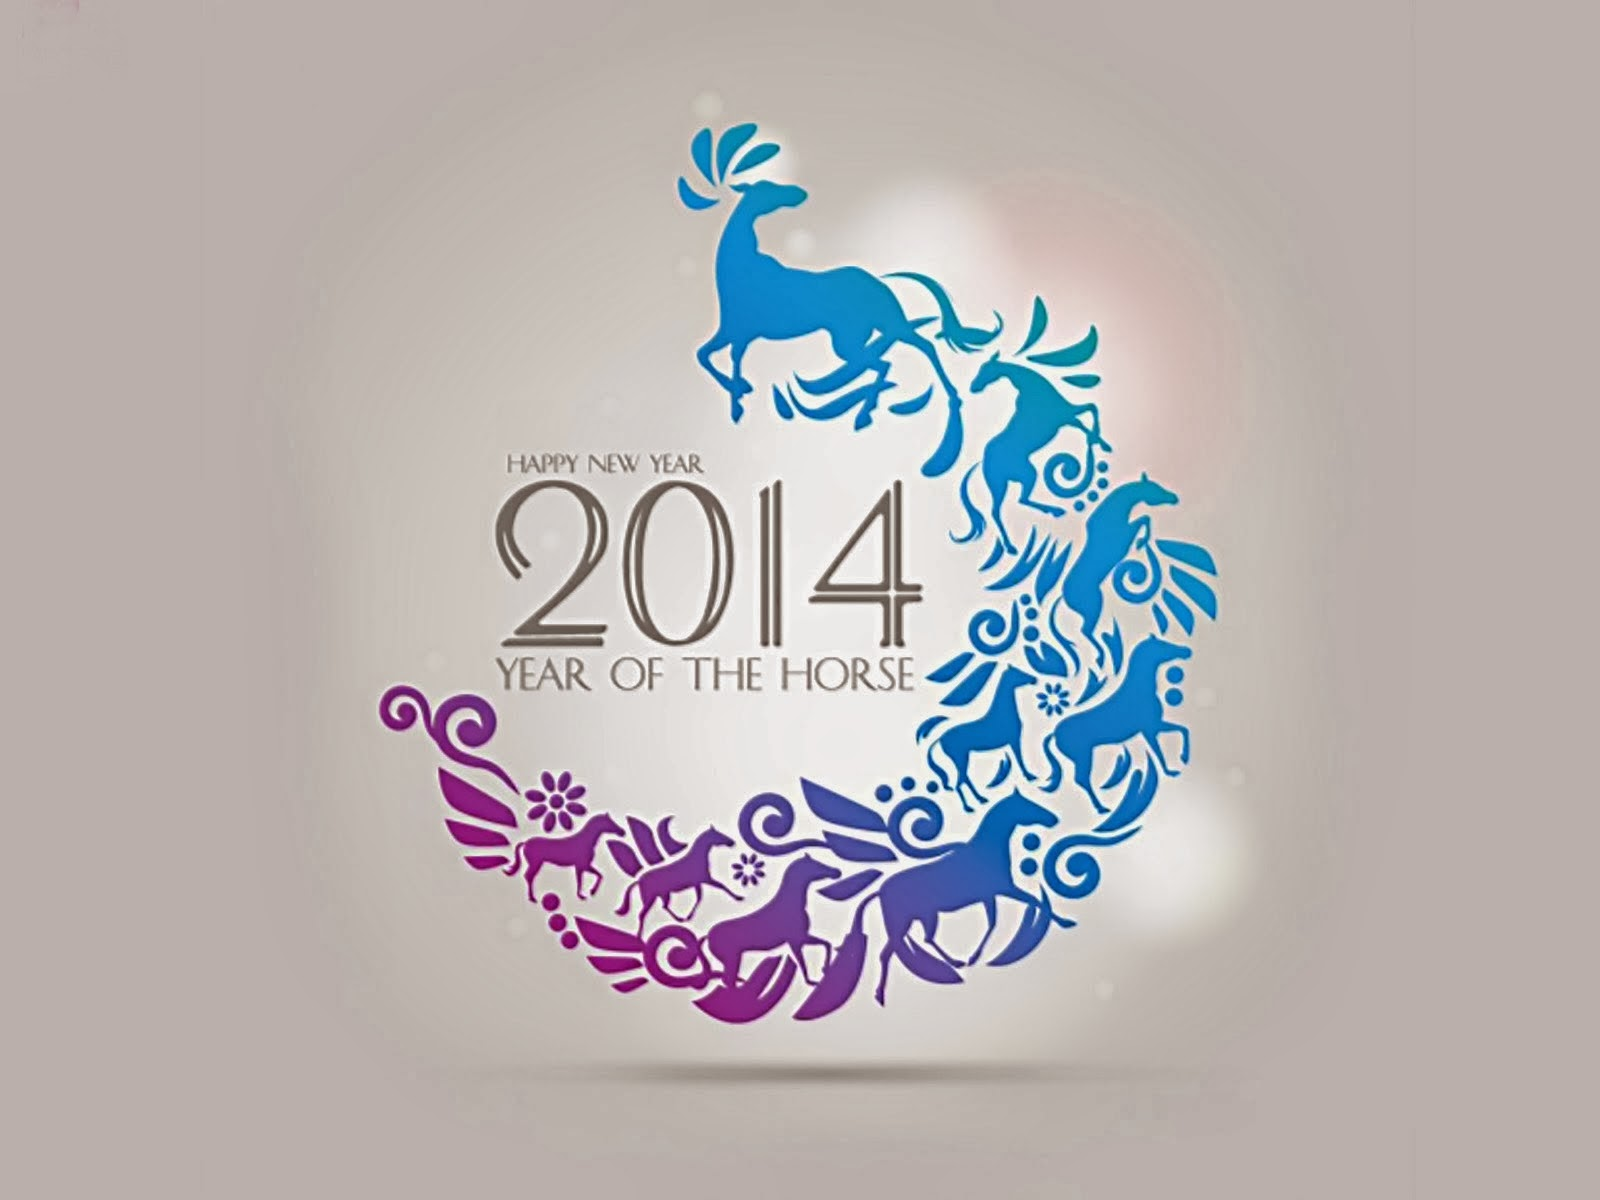 Happy chinese new year 2014 wishes quotes and messages happiness happy chinese new year 2014 wishes quotes and messages kristyandbryce Images